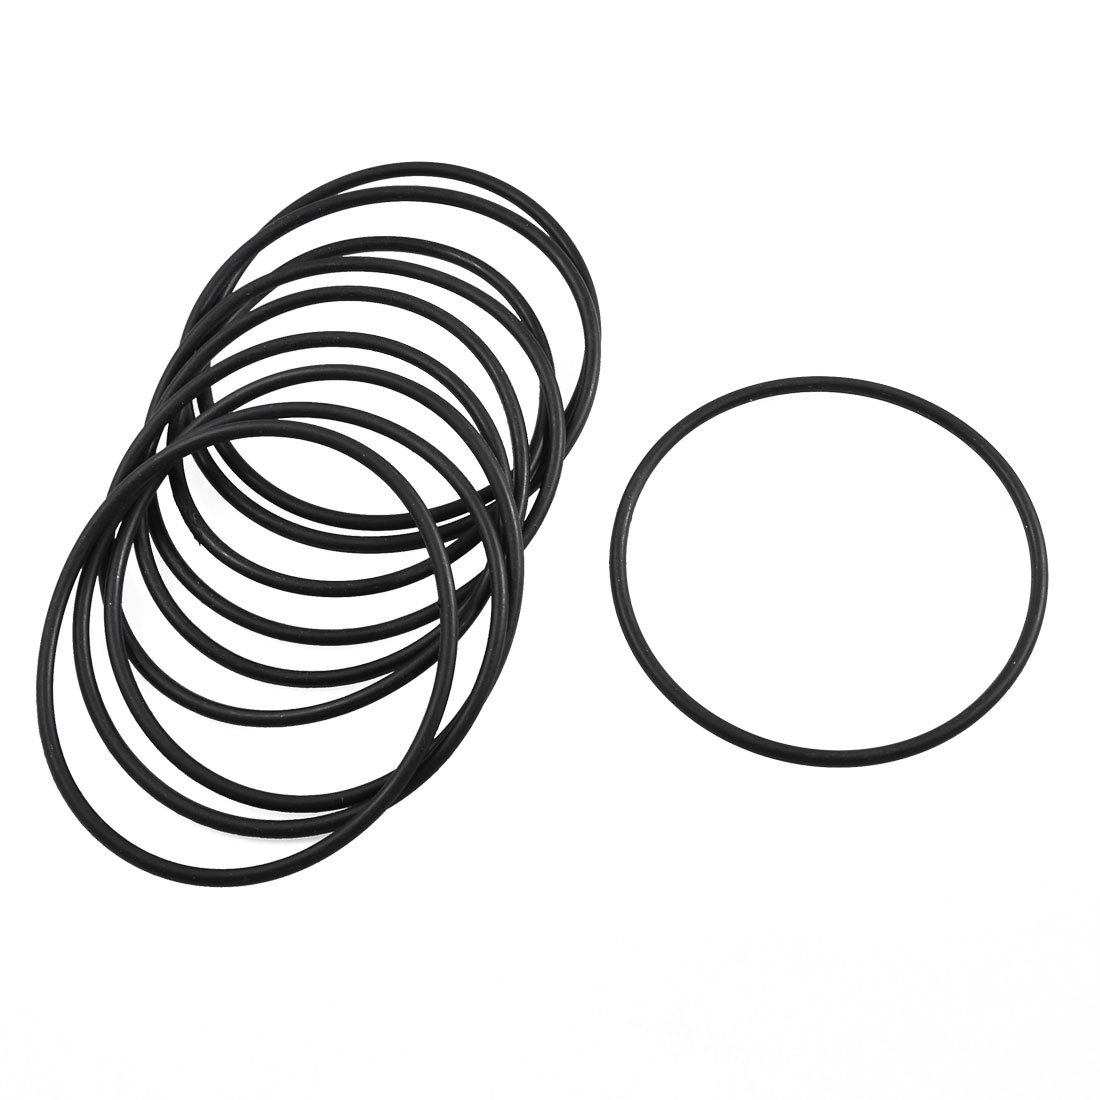 10 Pcs 78mm x 71.8mm x 3.1mm Mechanical Black Rubber O Ring Oil Seal Gaskets